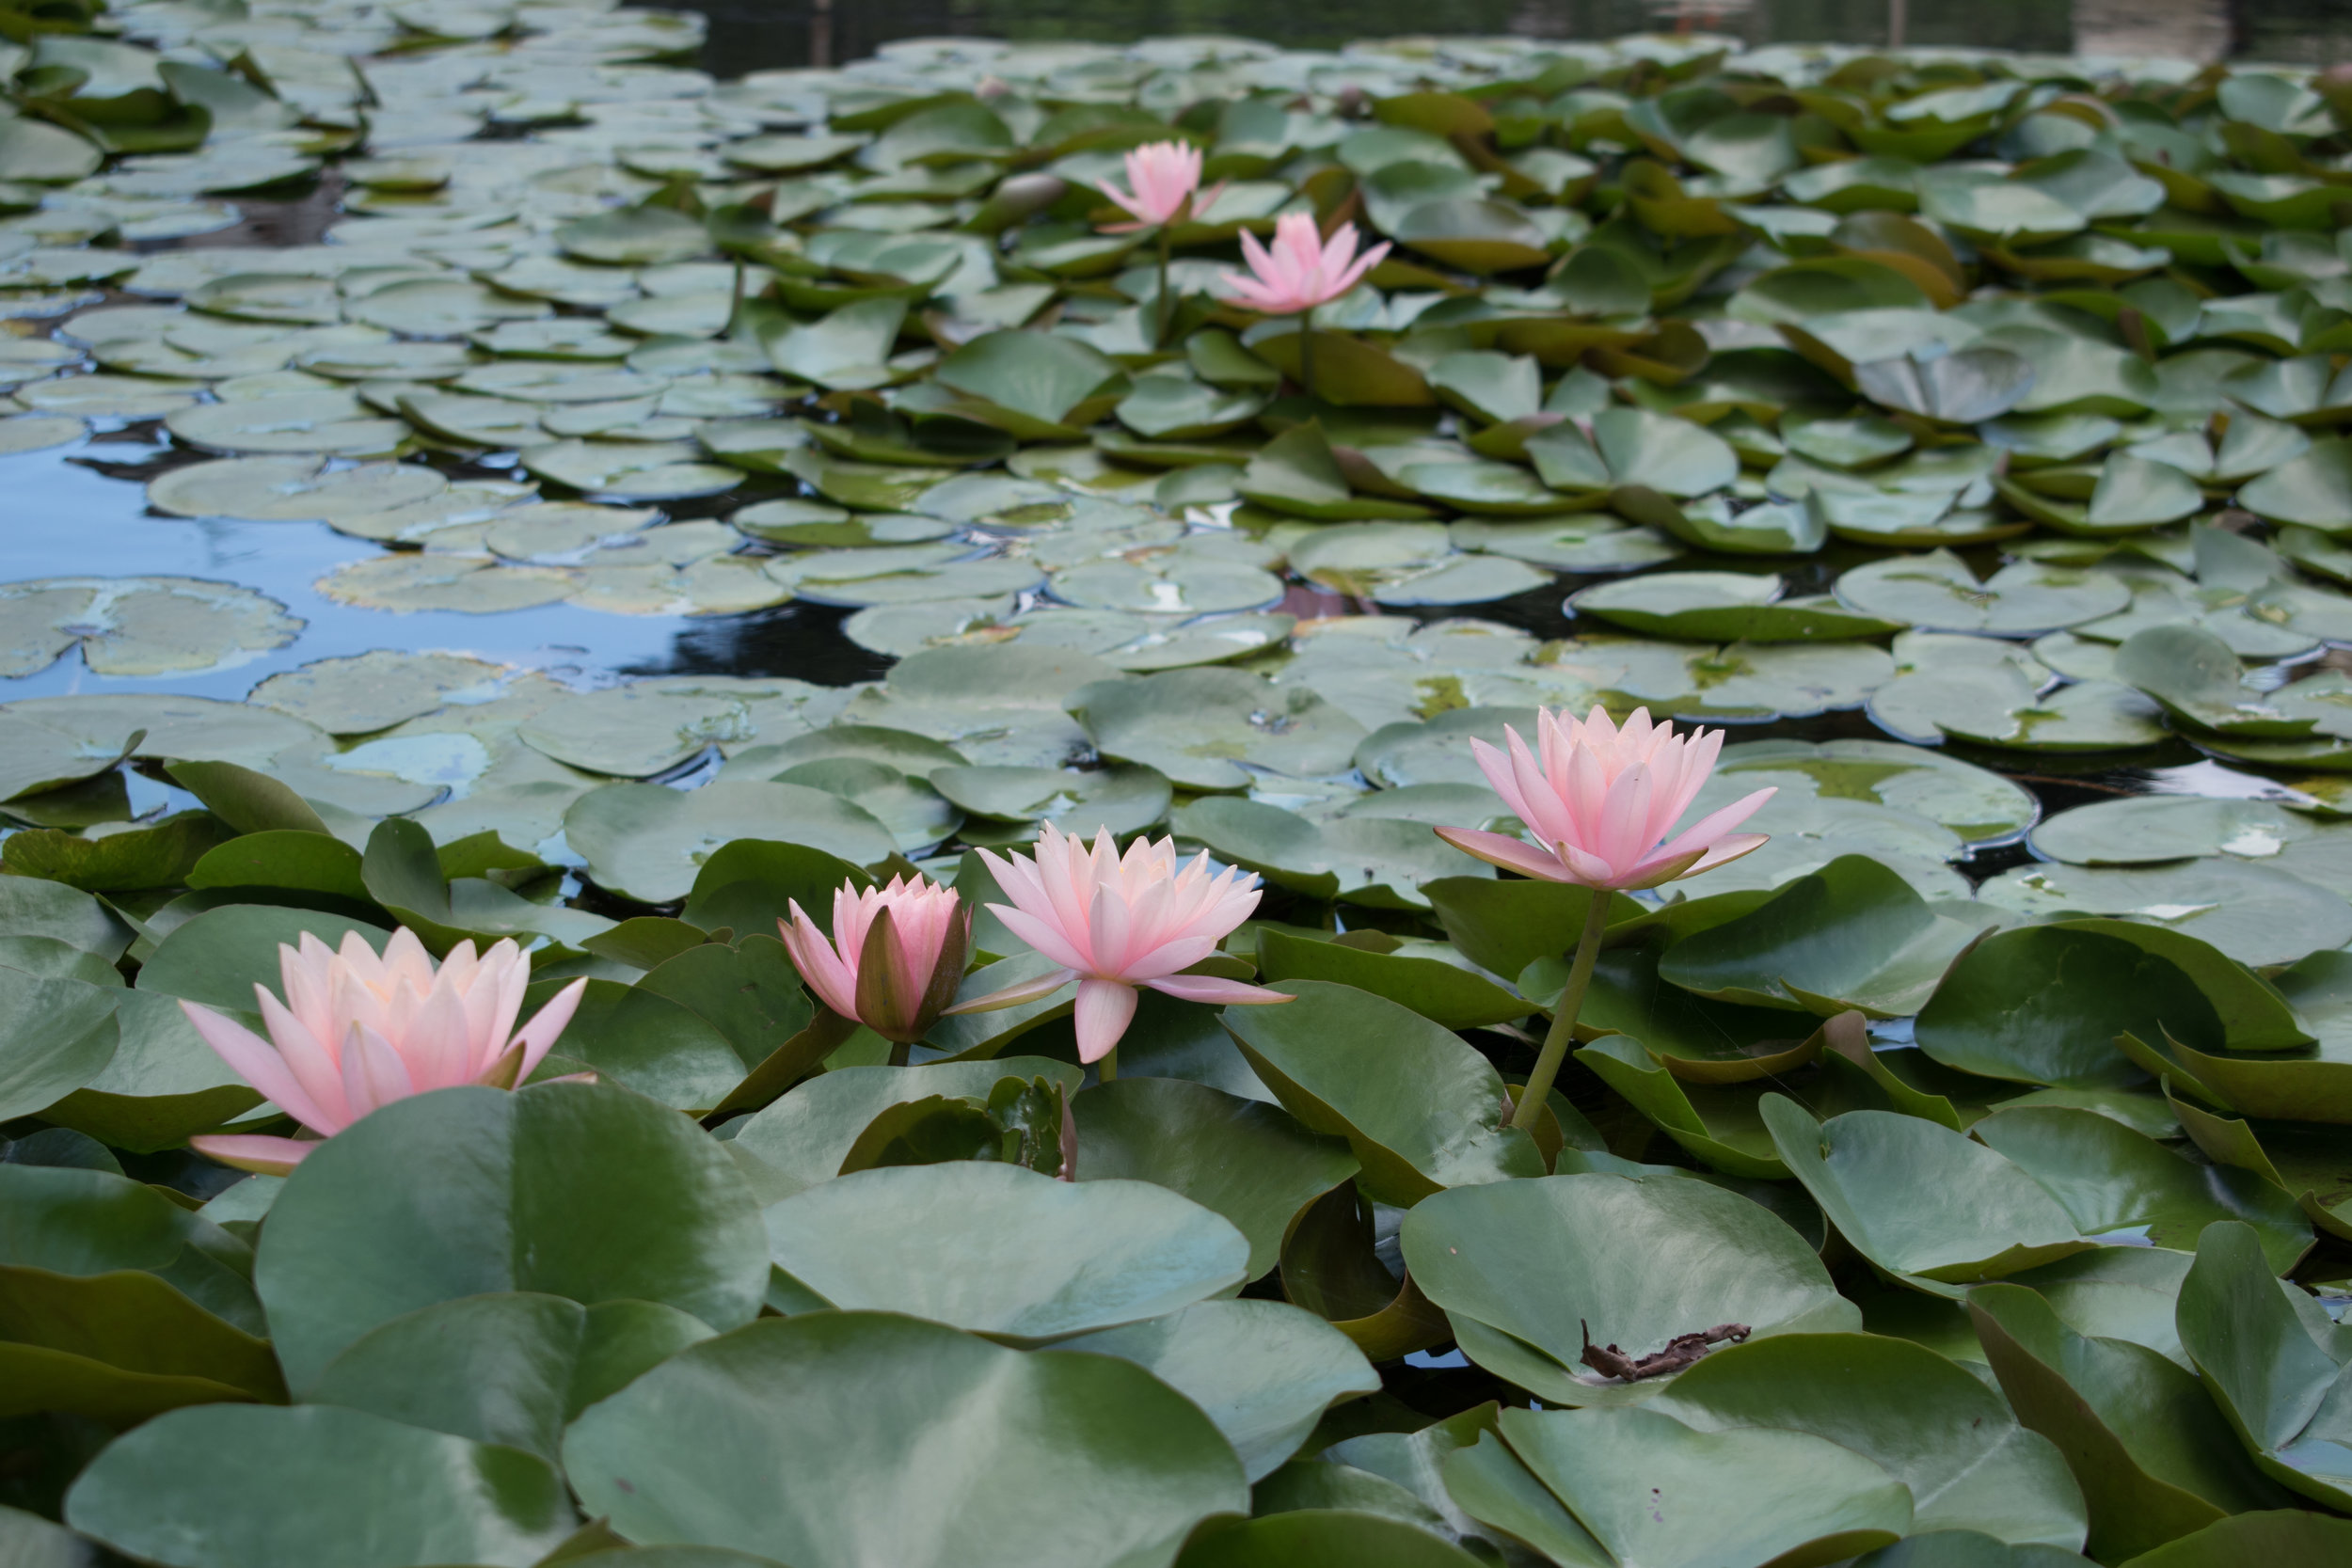 Lillies In The Garden Of Dreams In Kathmandu, Nepal